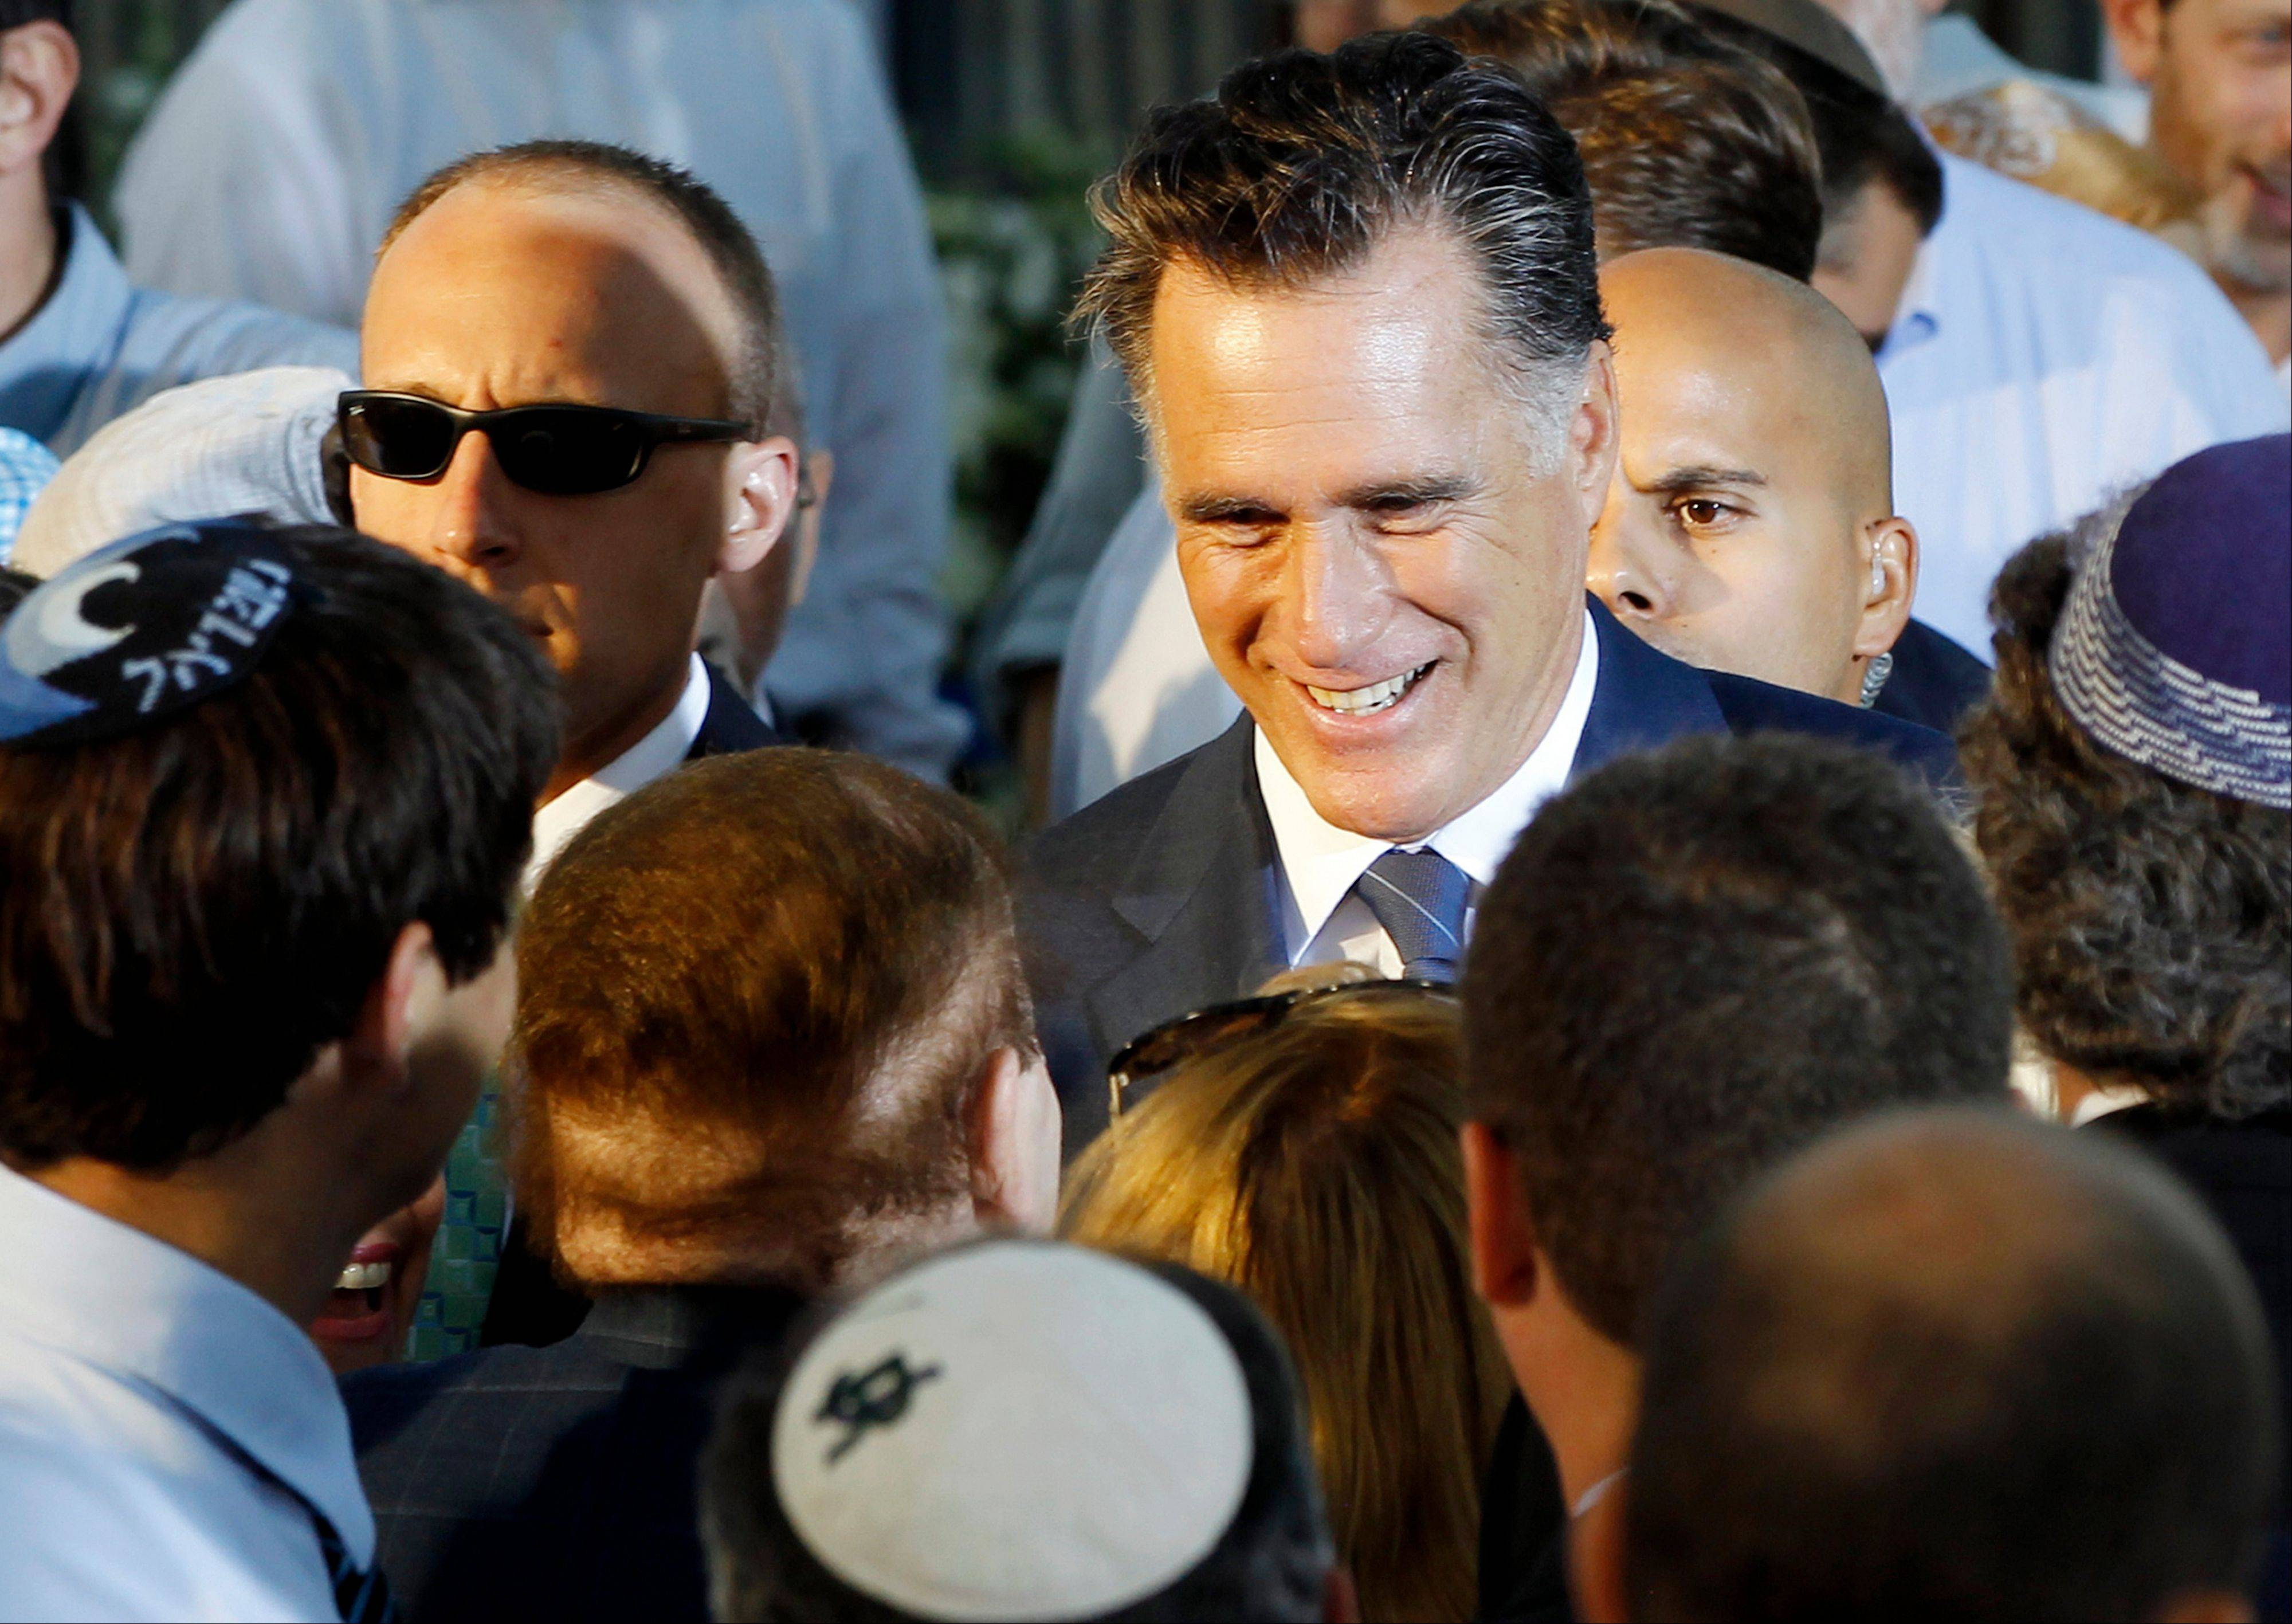 Romney: Overpaying taxes disqualifies president